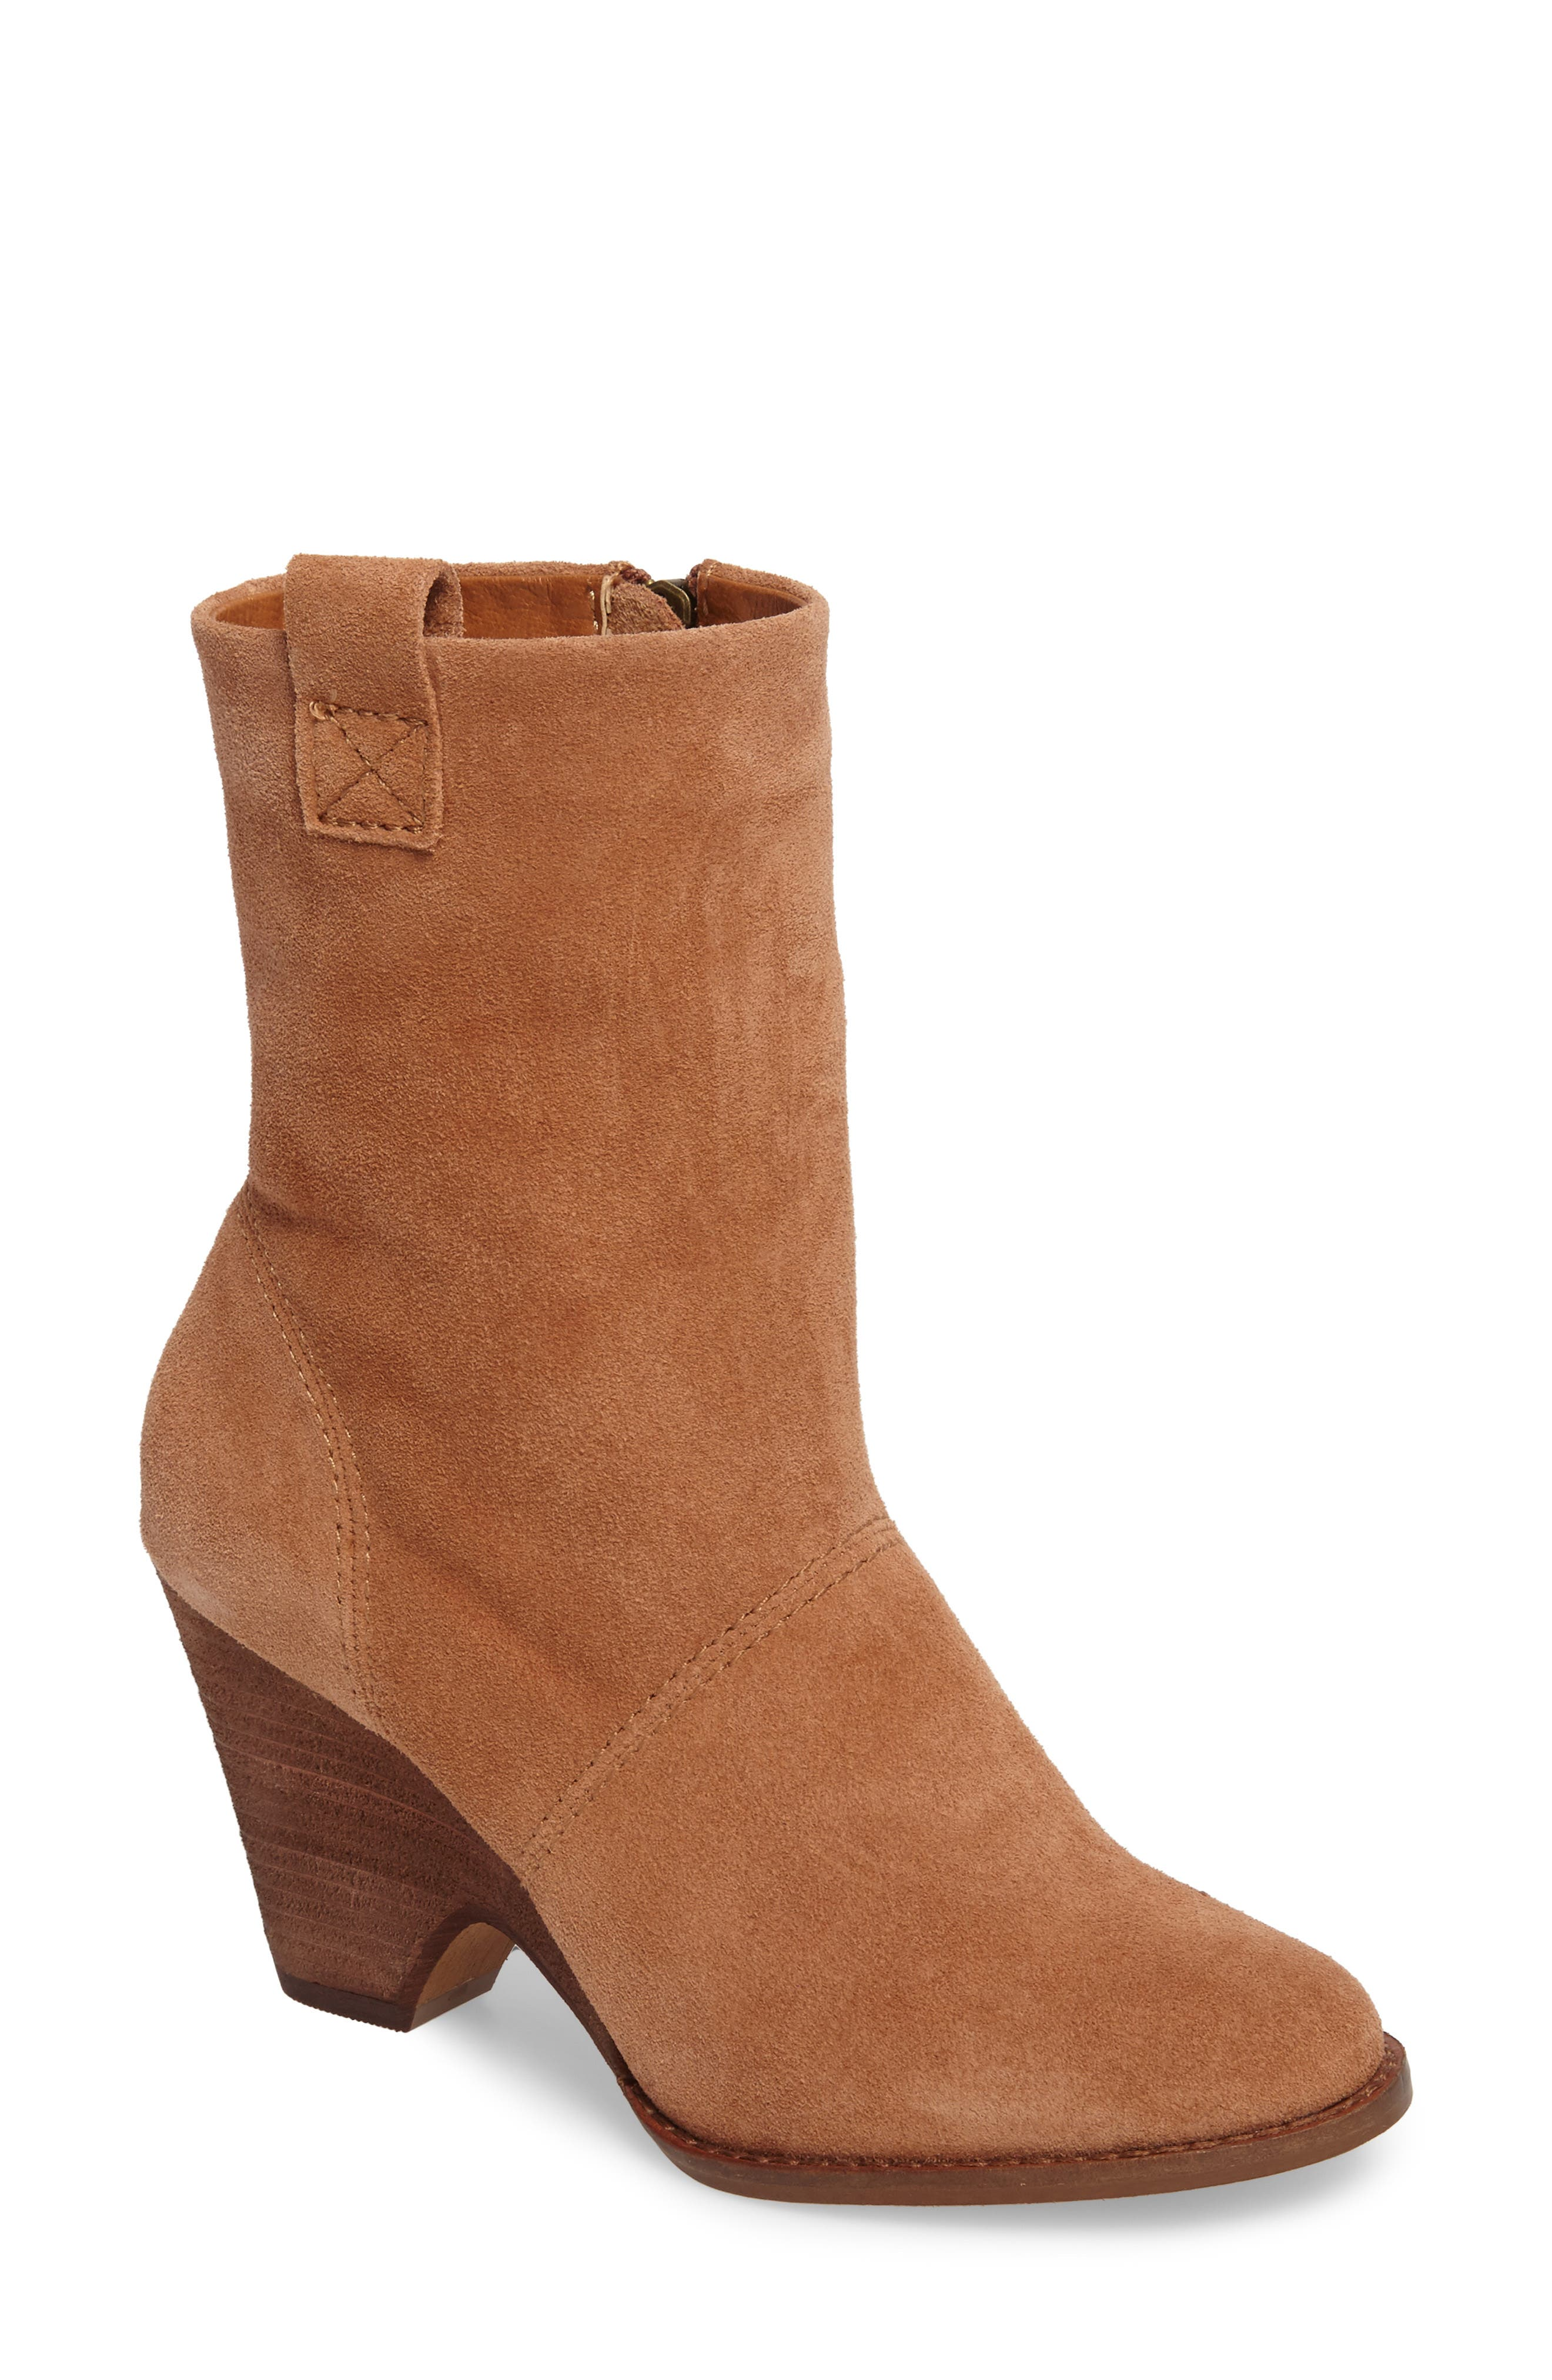 Kelsi Dagger Brooklyn Houston Boot (Women)